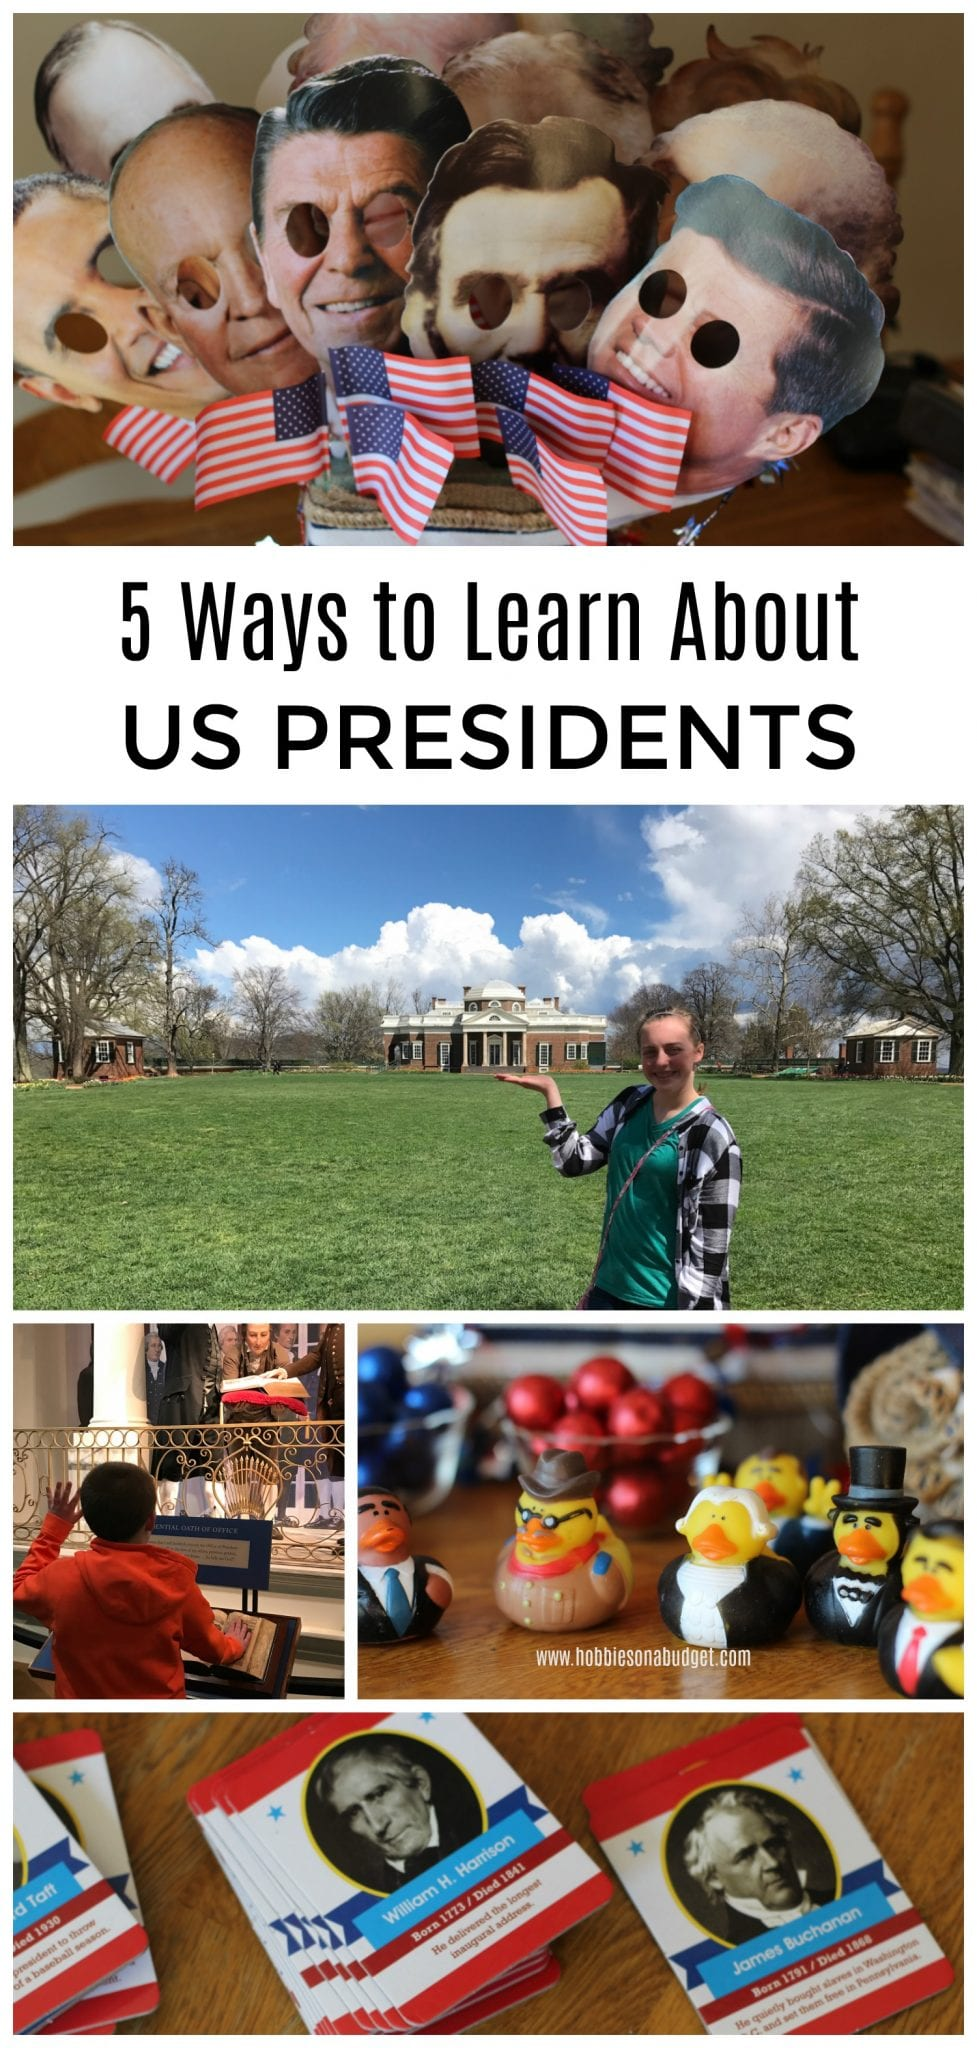 5 Ways to Learn about US Presidents